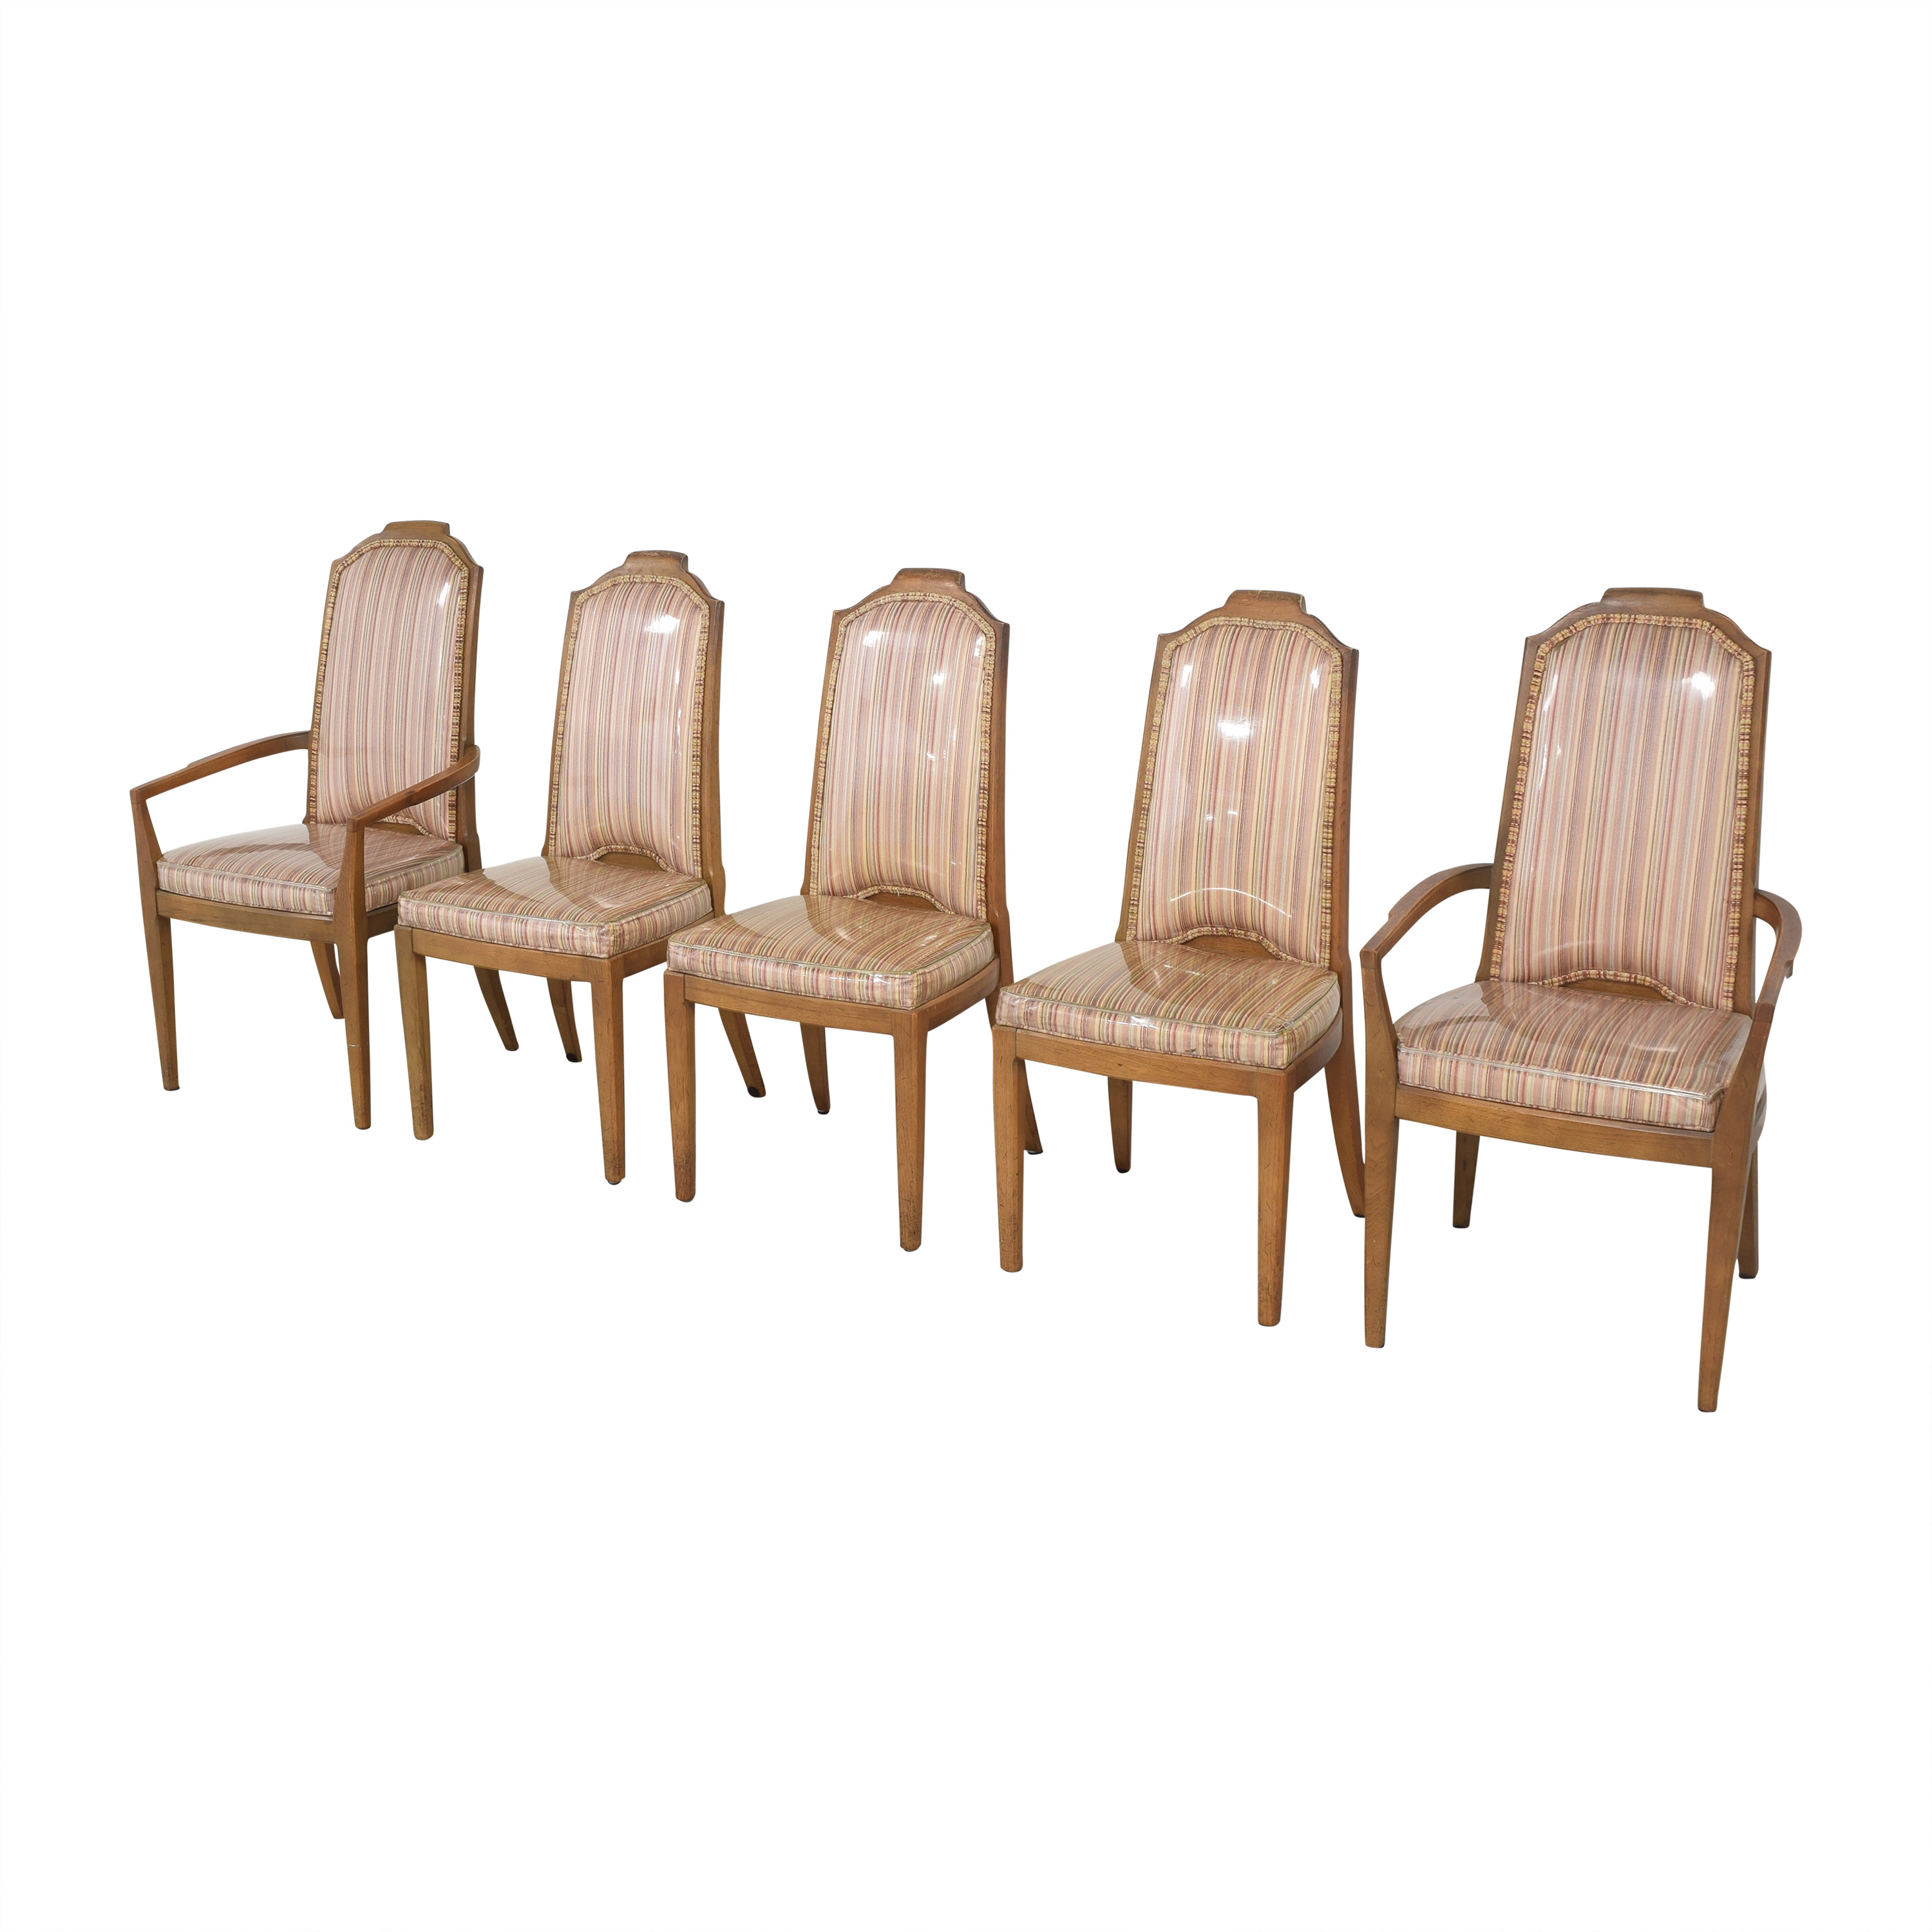 Drexel Drexel Stripe Upholstered Dining Chairs coupon